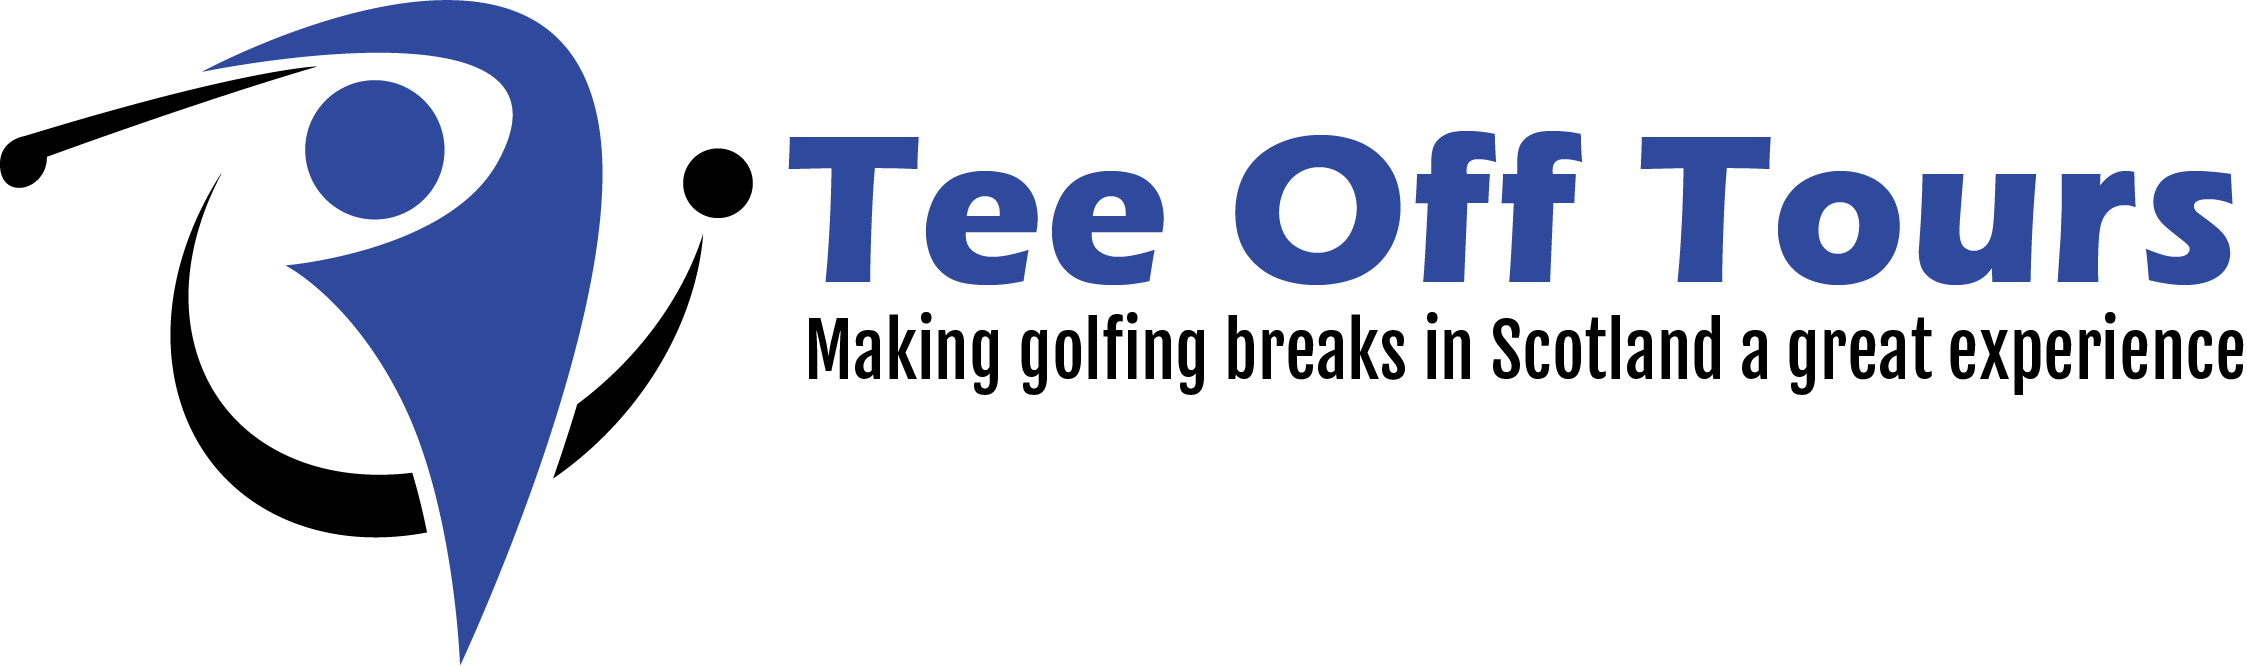 Tee Off Tours